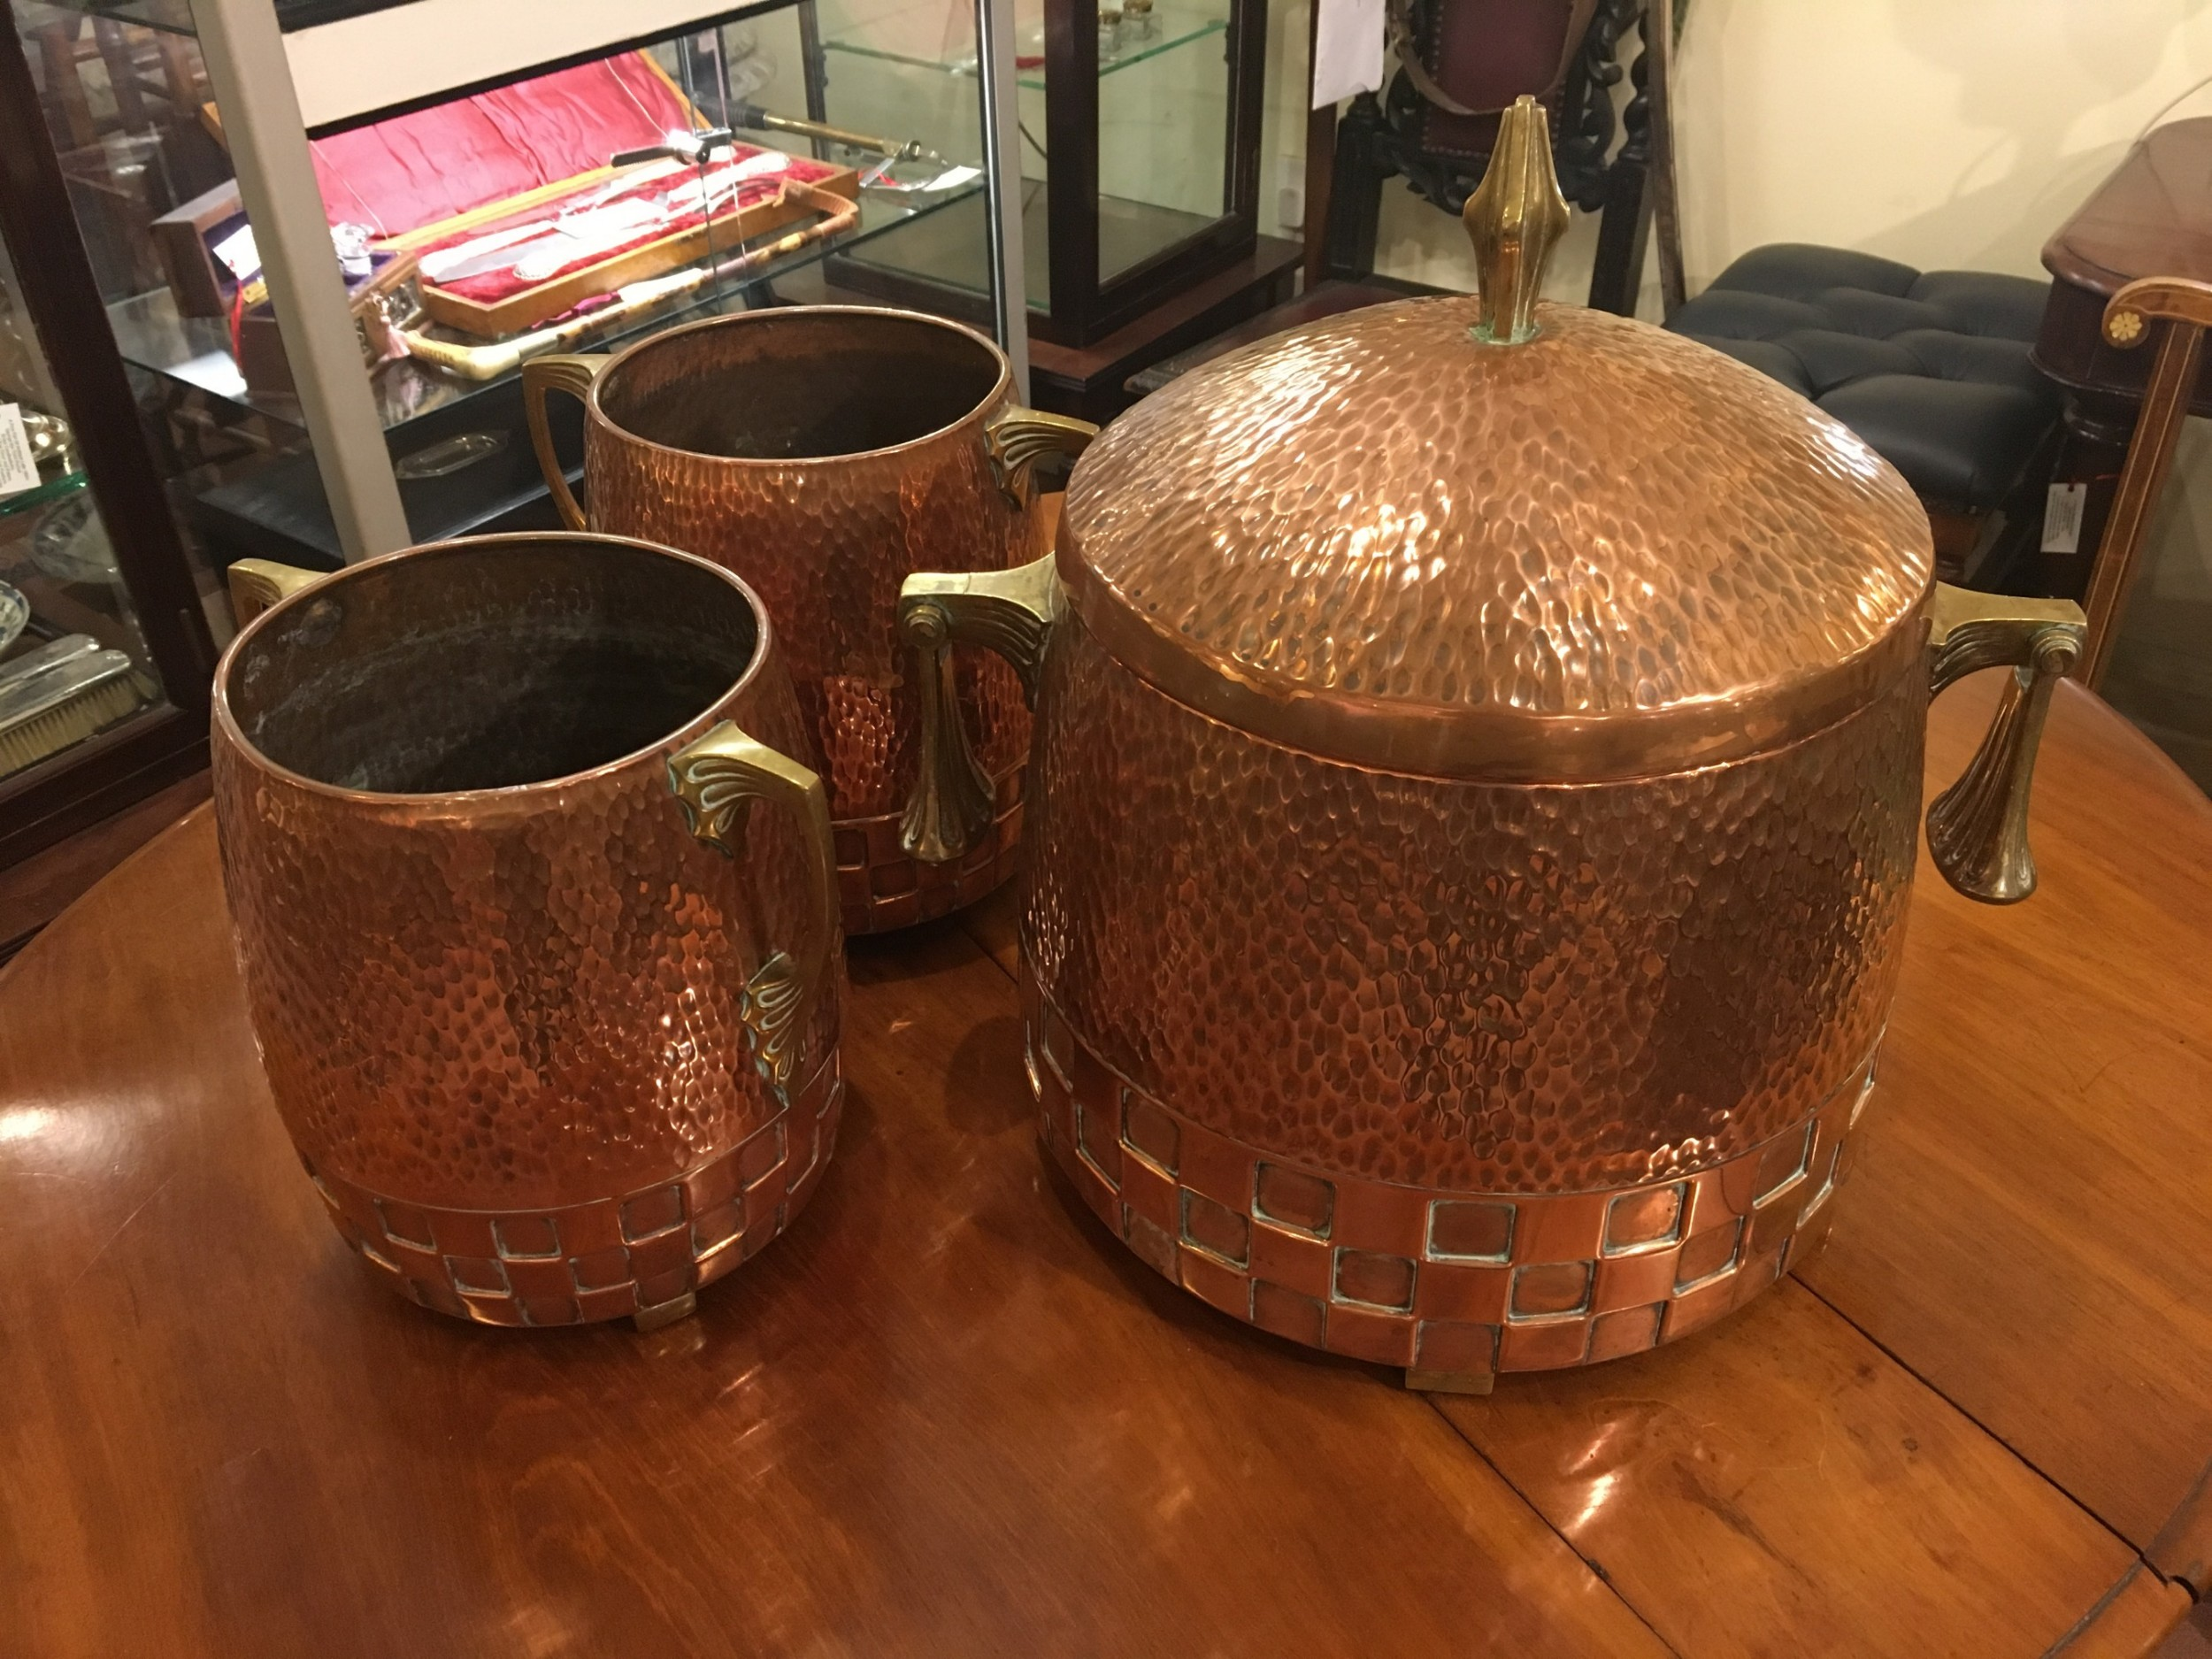 wmf matching copper ice pale and ice buckets early 20th century